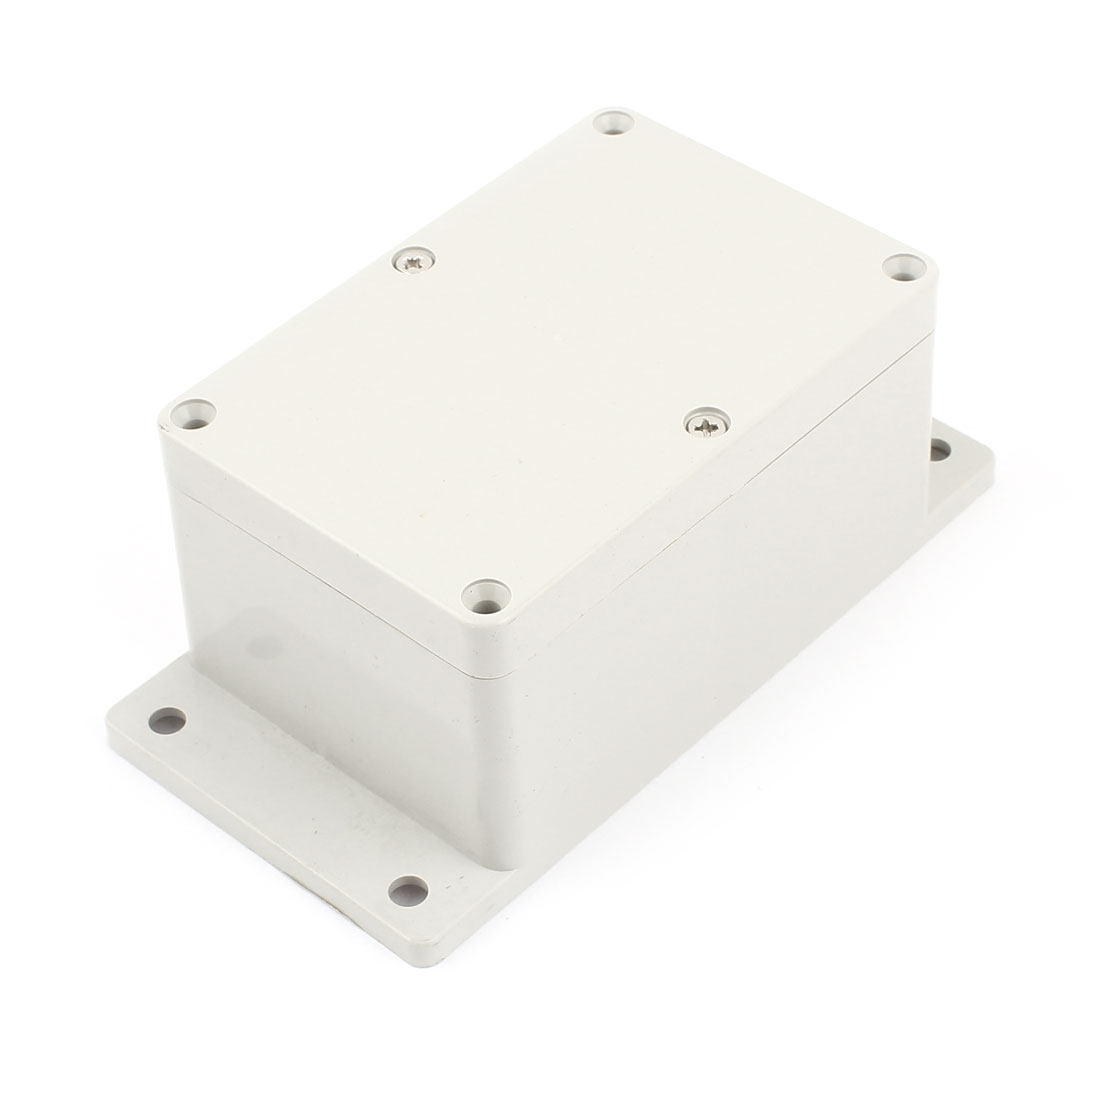 120mm x 81mm x 65mm Waterproof Plastic Sealed DIY Joint Electrical Junction Box